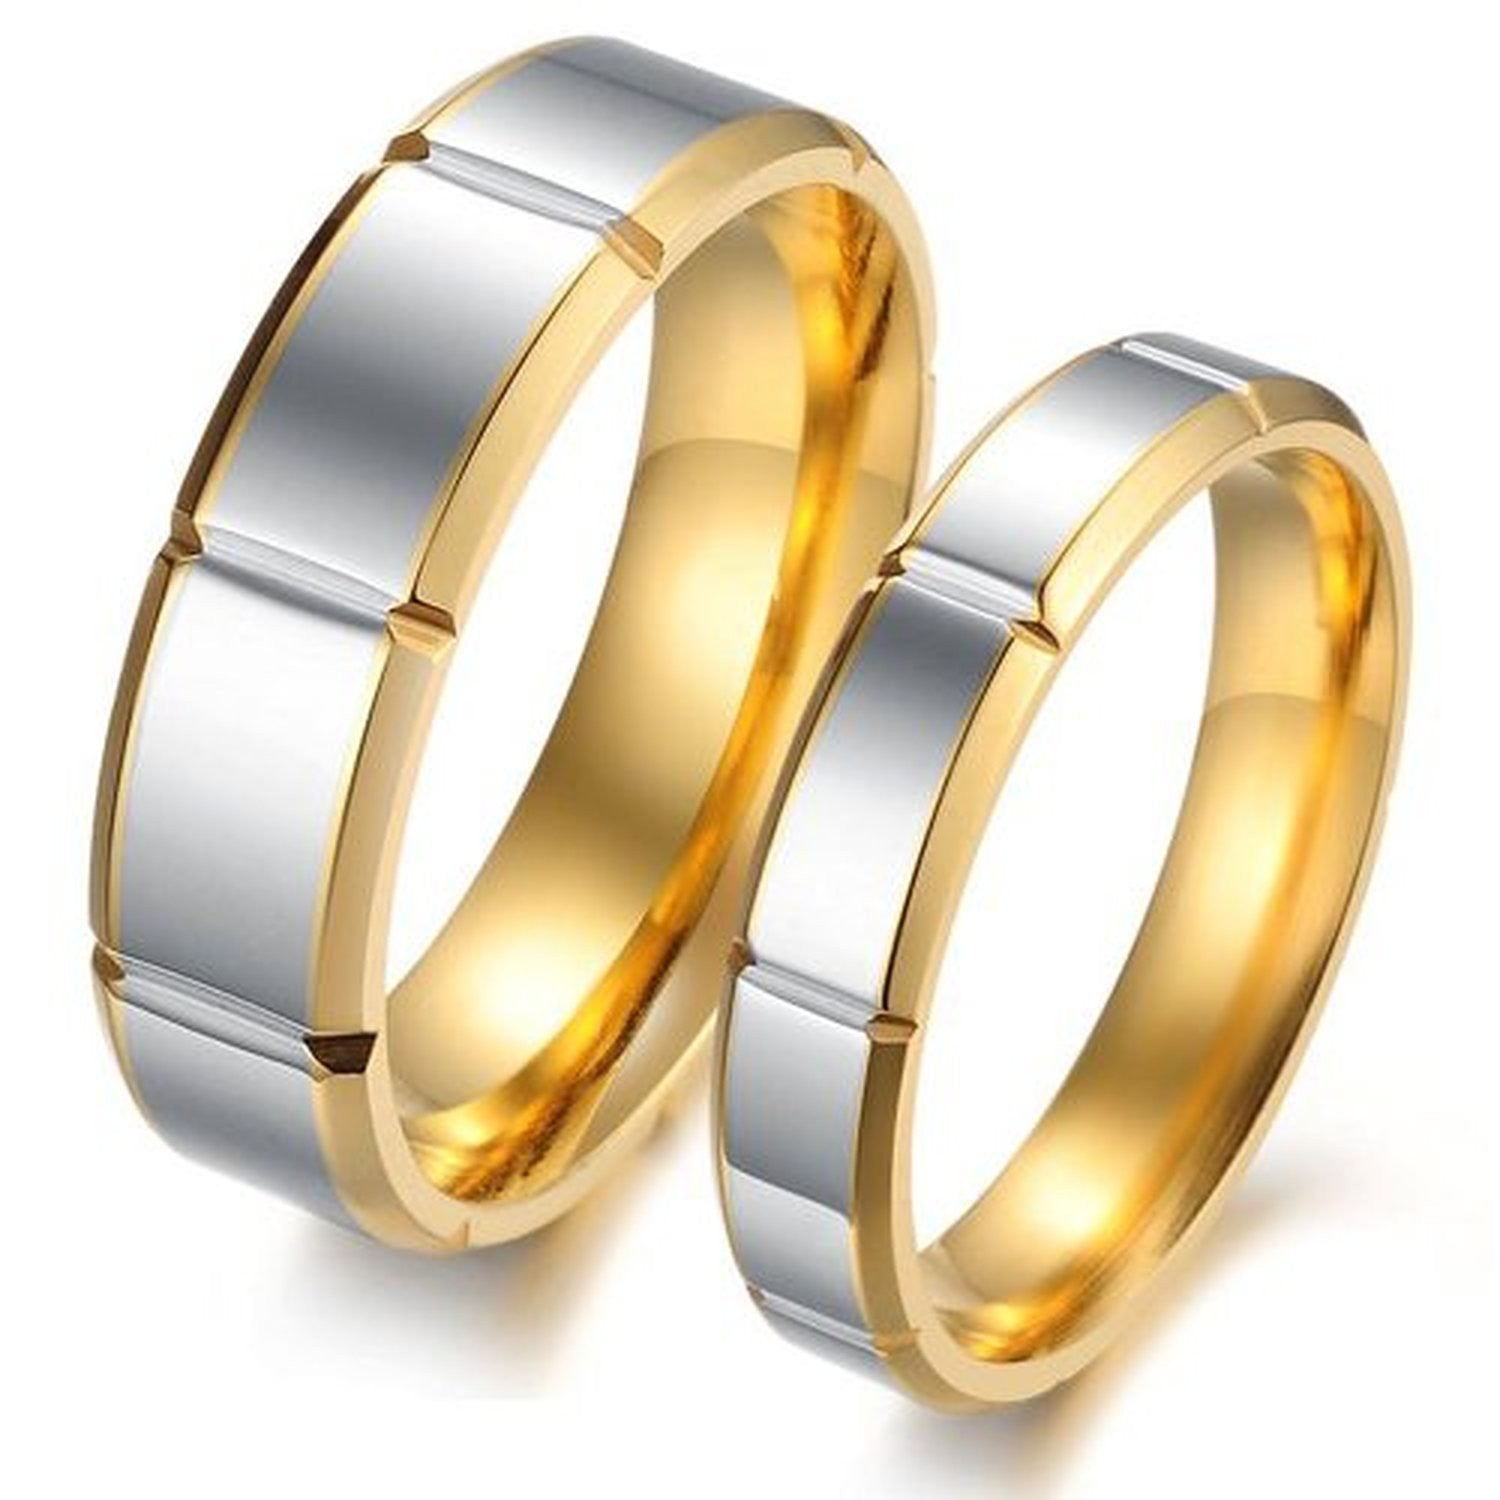 australia william christopher jewellery rings titanium big mens wedding ring sydney